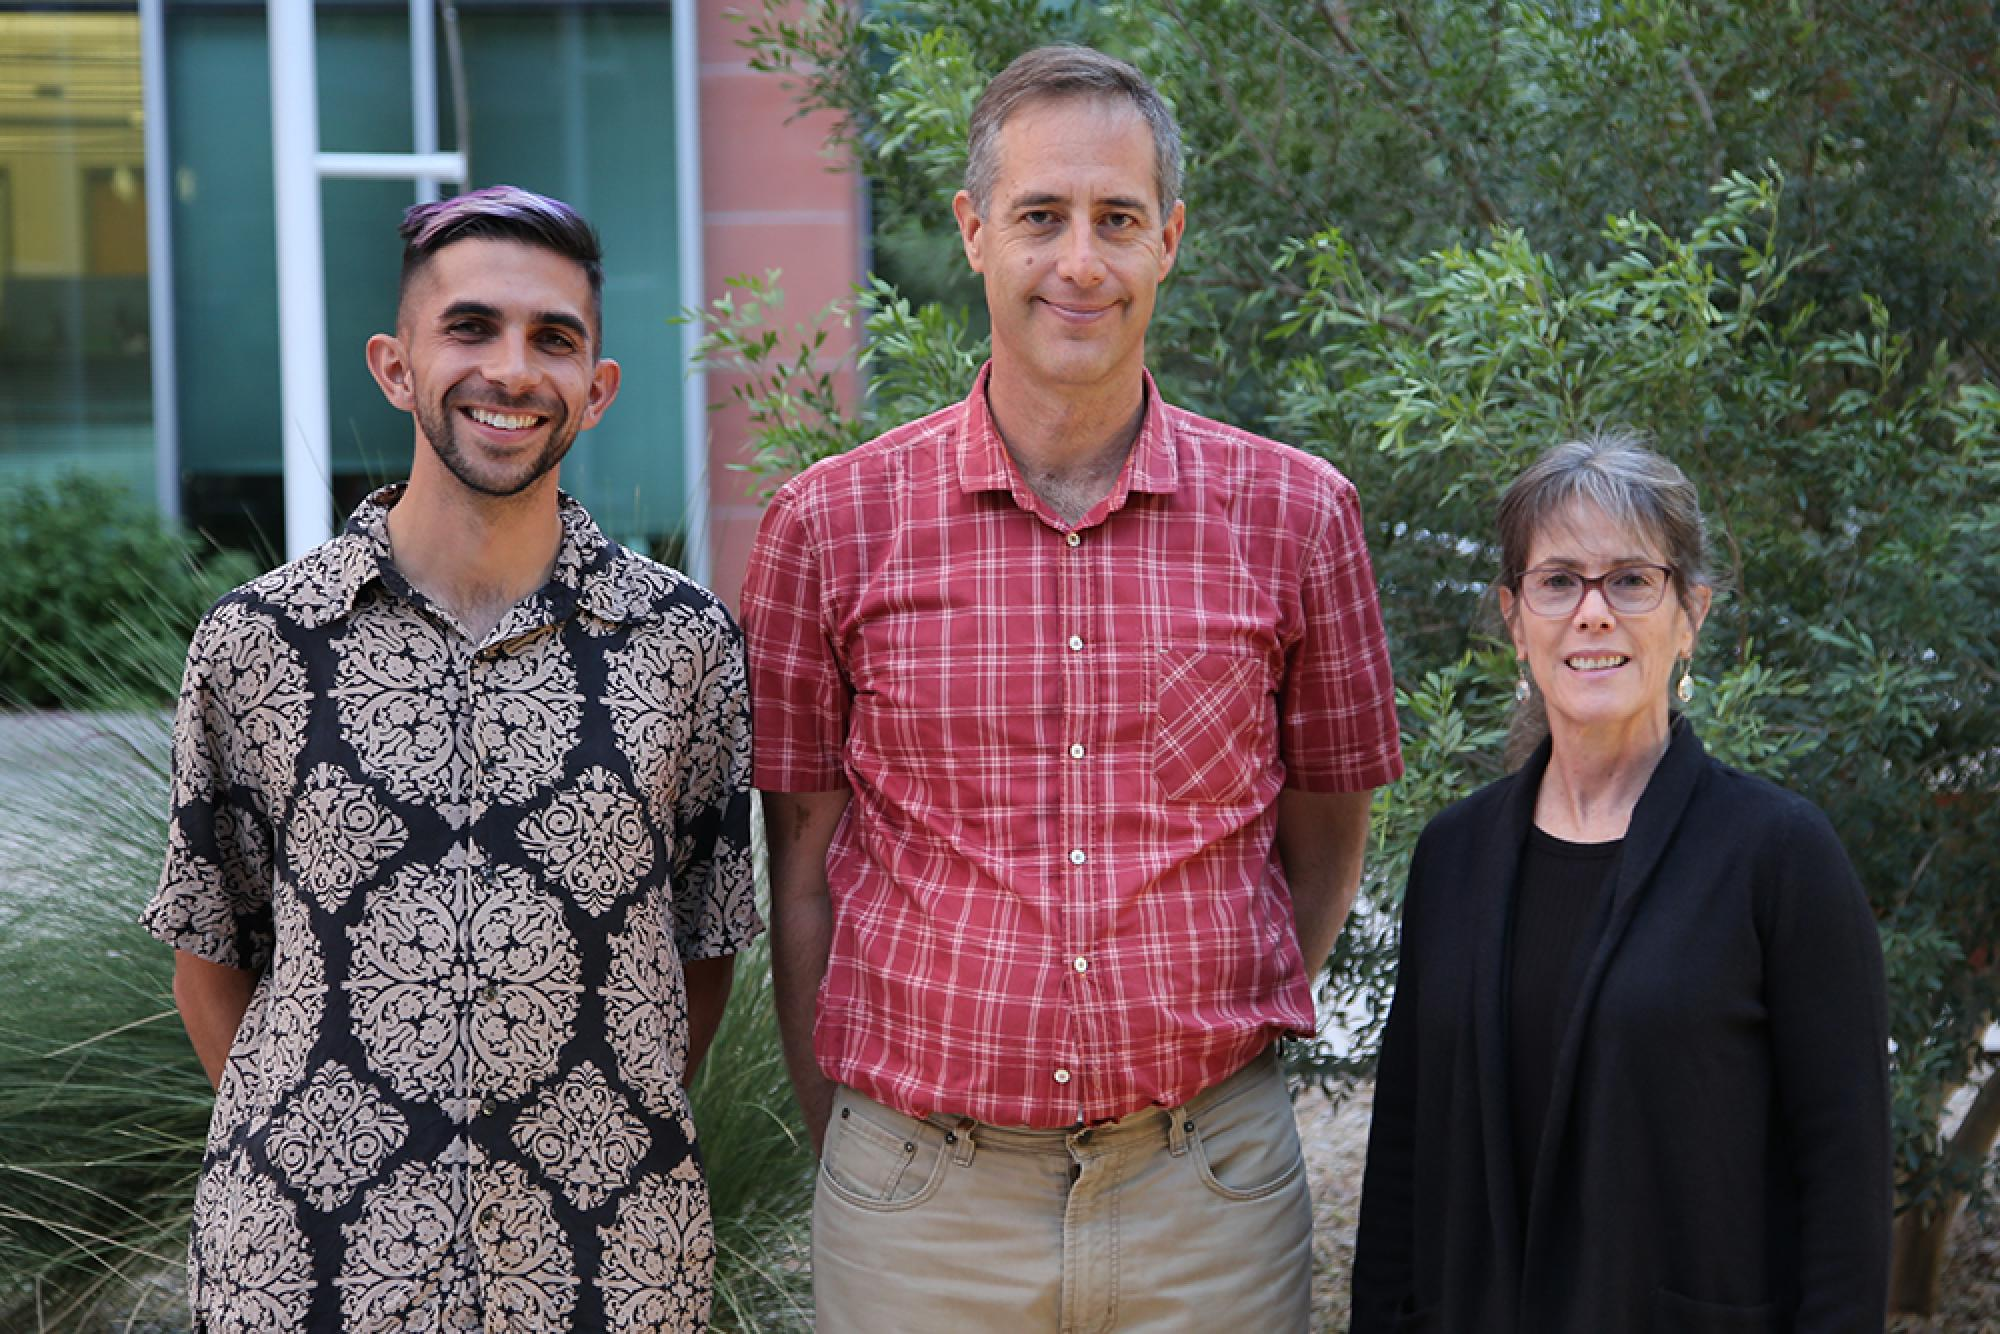 From left: Dual M.D./Ph.D. student Alexander Alvarez, Russell Witte and Sonia Vohnout.